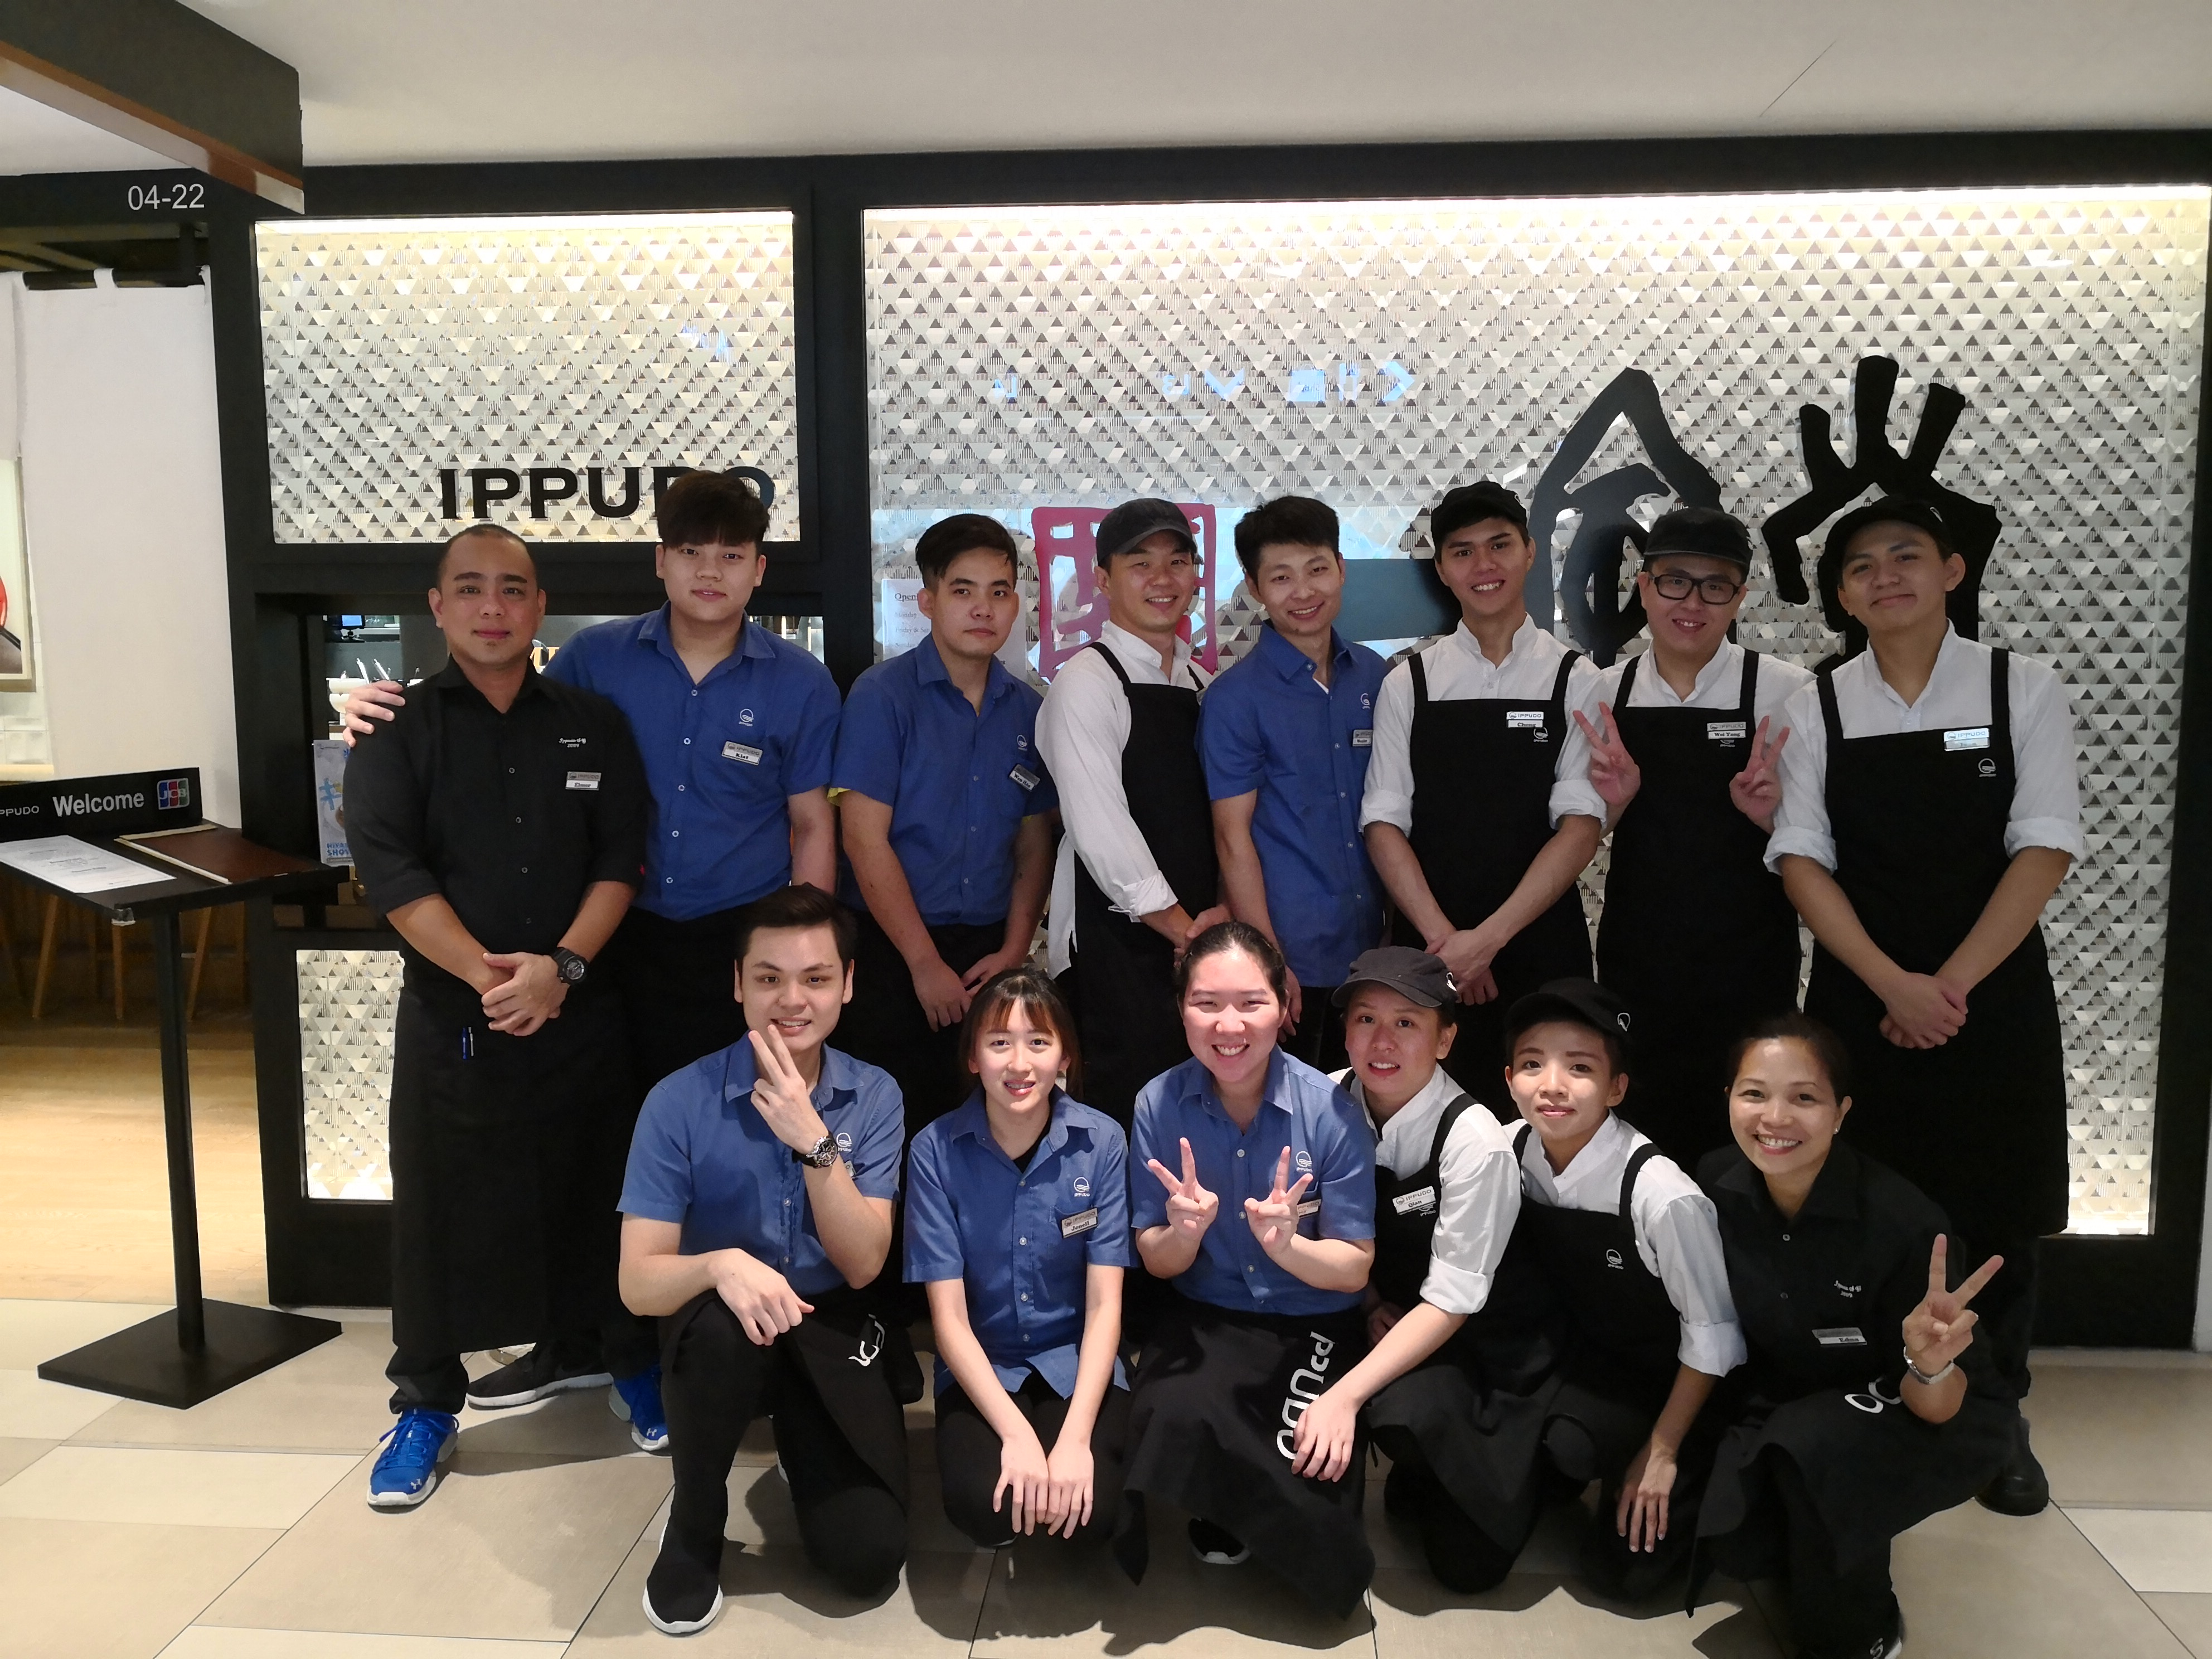 Join our Ippudo team as a Service/Kitchen Crew now!